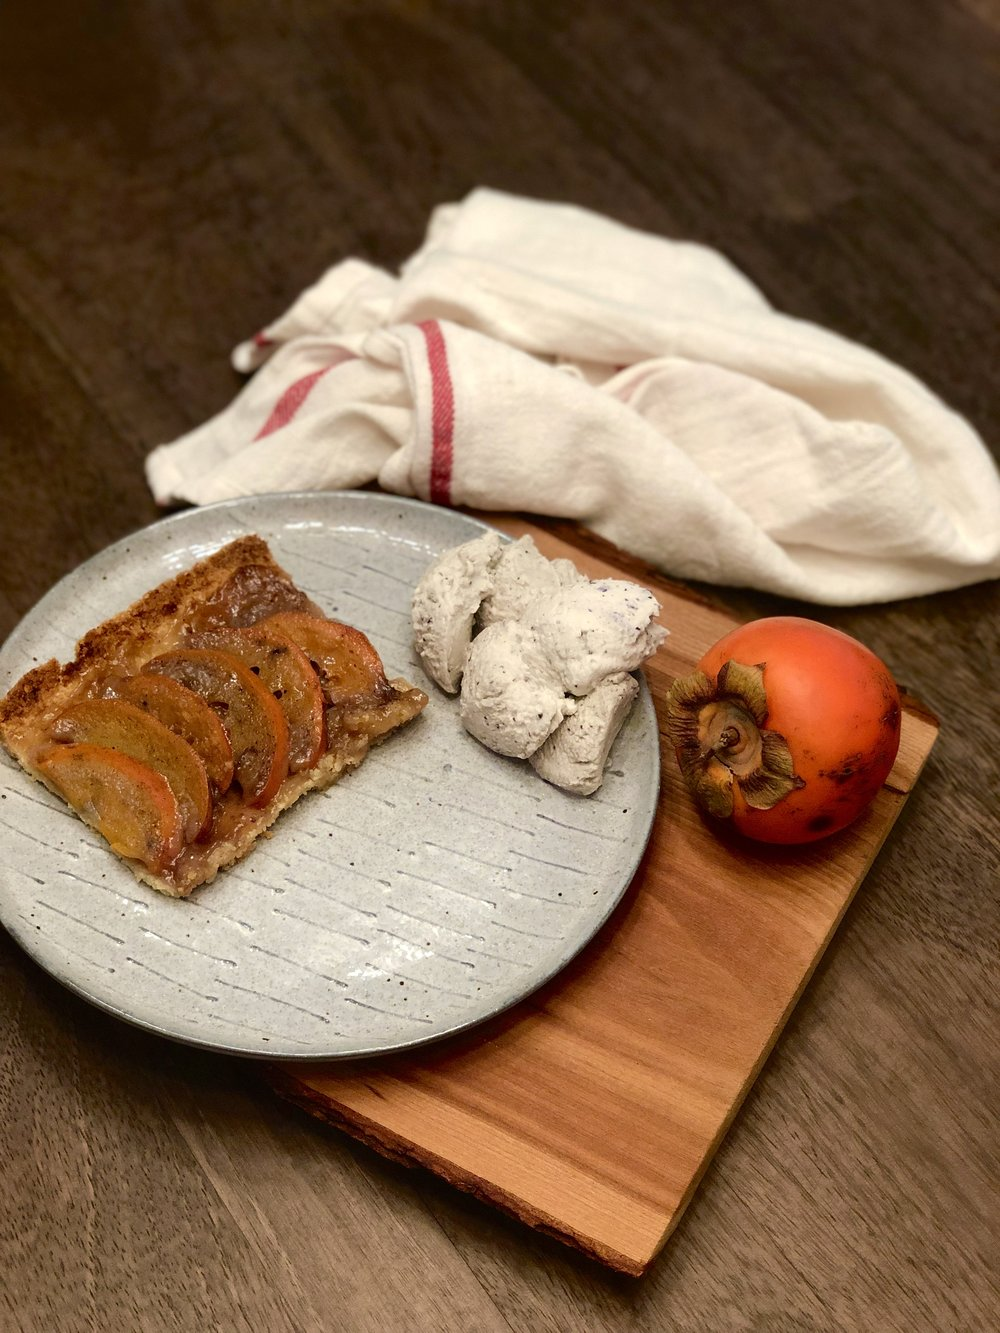 Another couple that day brought us a bag of persimmons so I used them along with the Meyer lemon juice to bake a five-spice persimmon tart. We've been eating it with mounds of wild blueberry whipped cream. Recipe below.